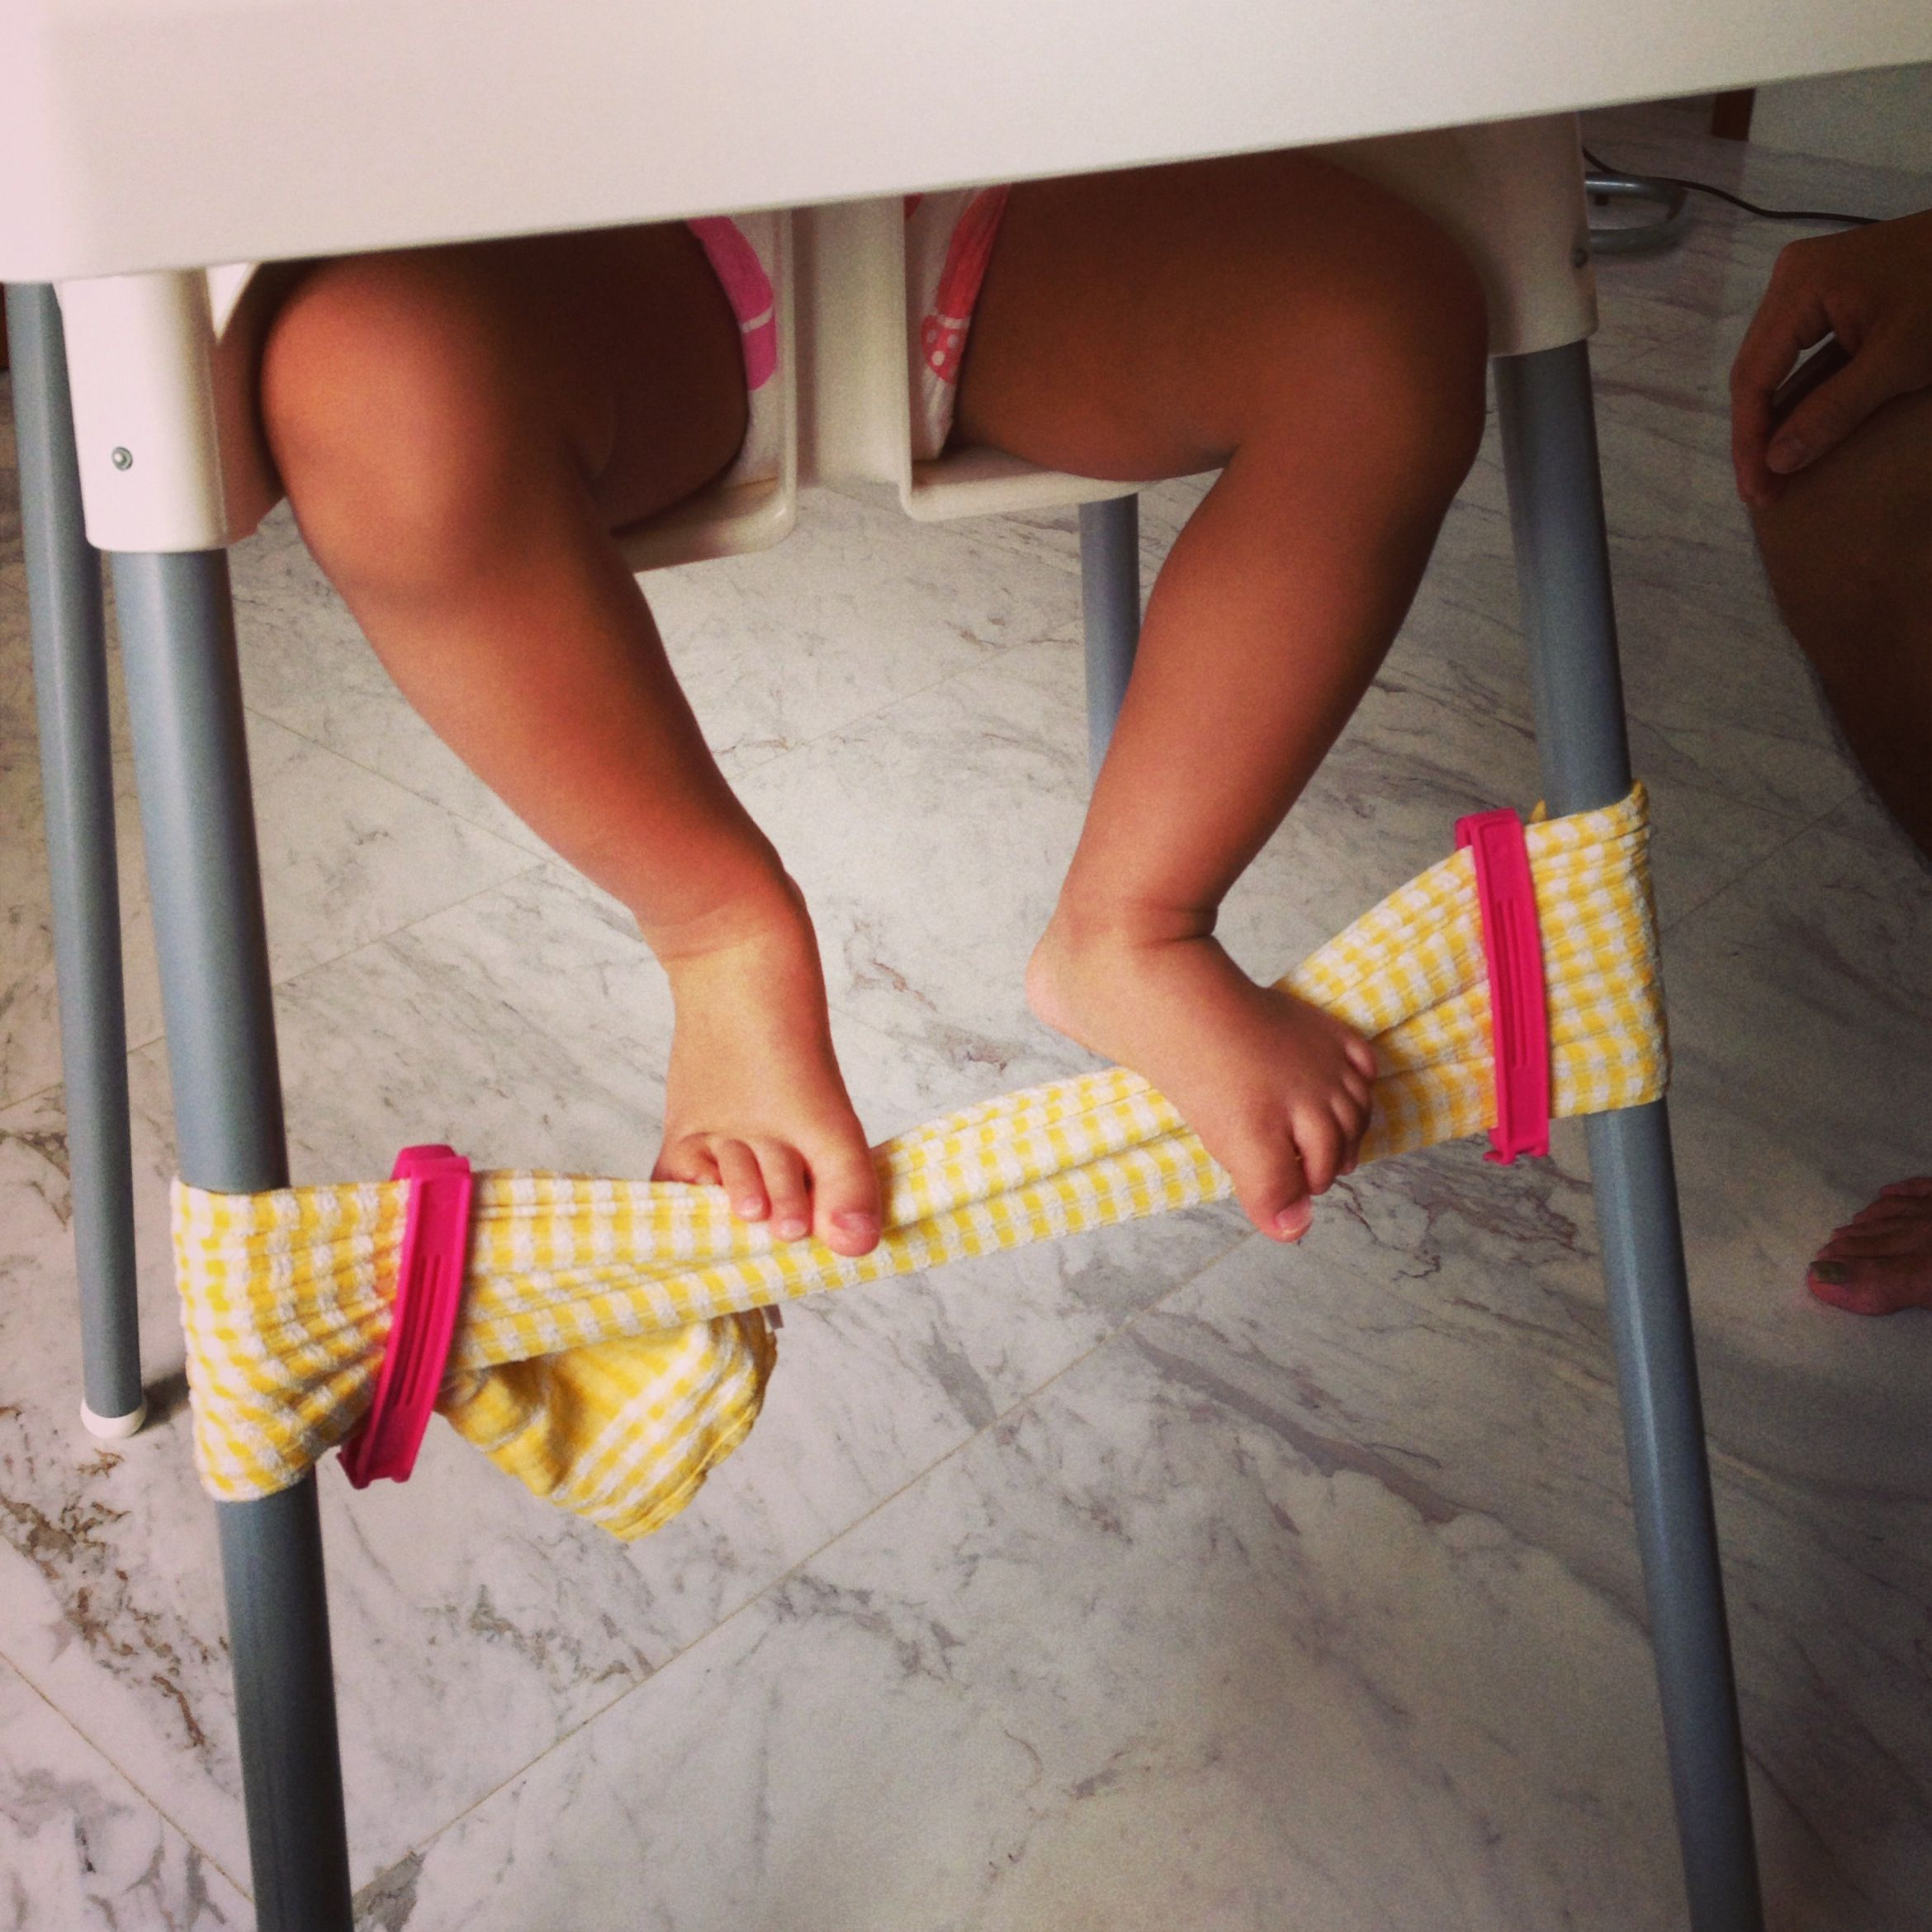 DIY Foot Rest for Ikea Antilop High Chair - secure the ends of a dish towel